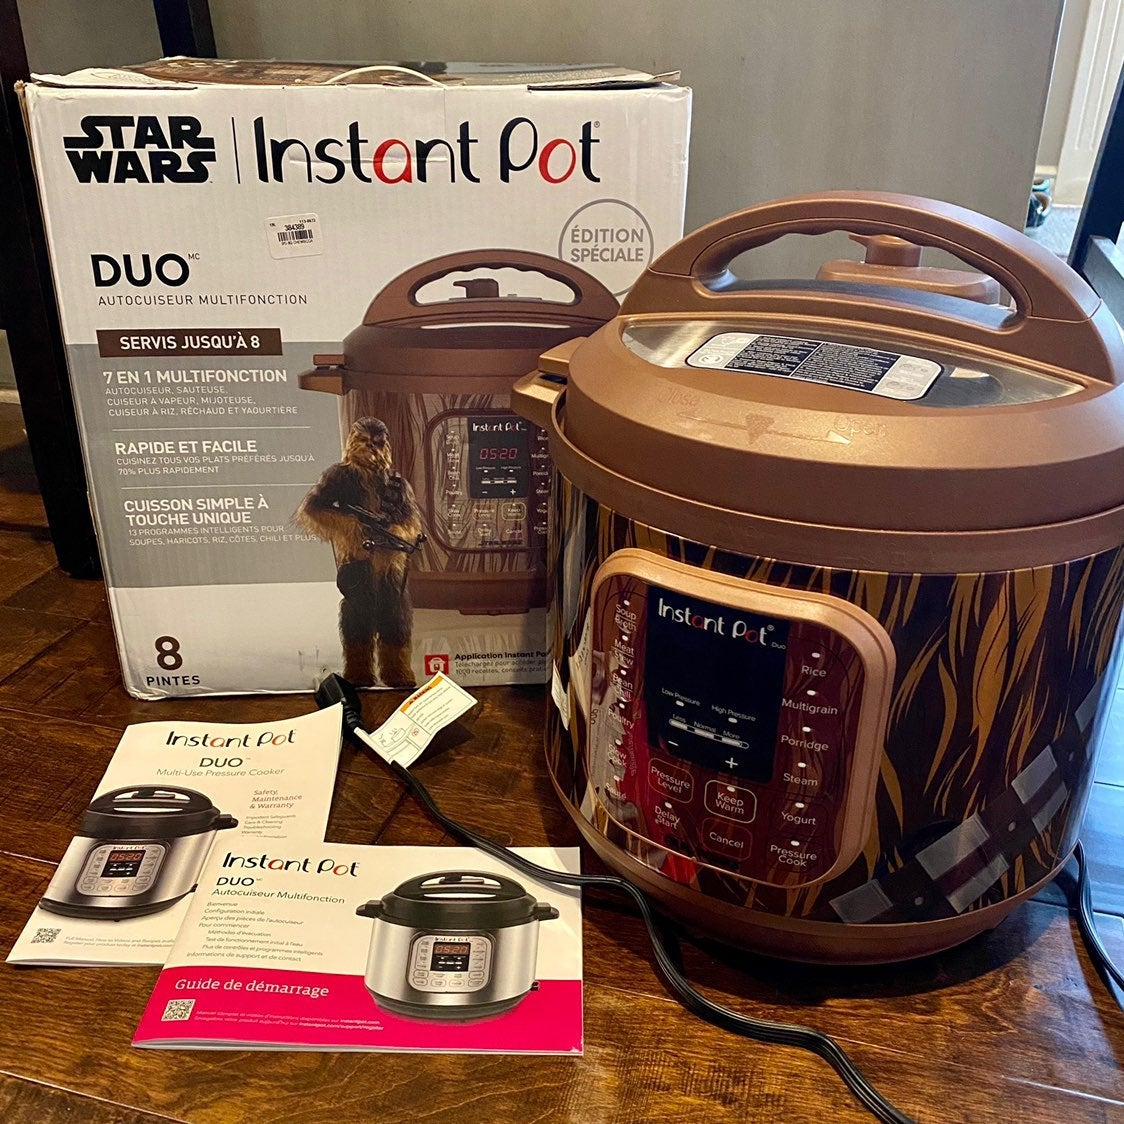 Special Edition Instant Pot Star Wars!